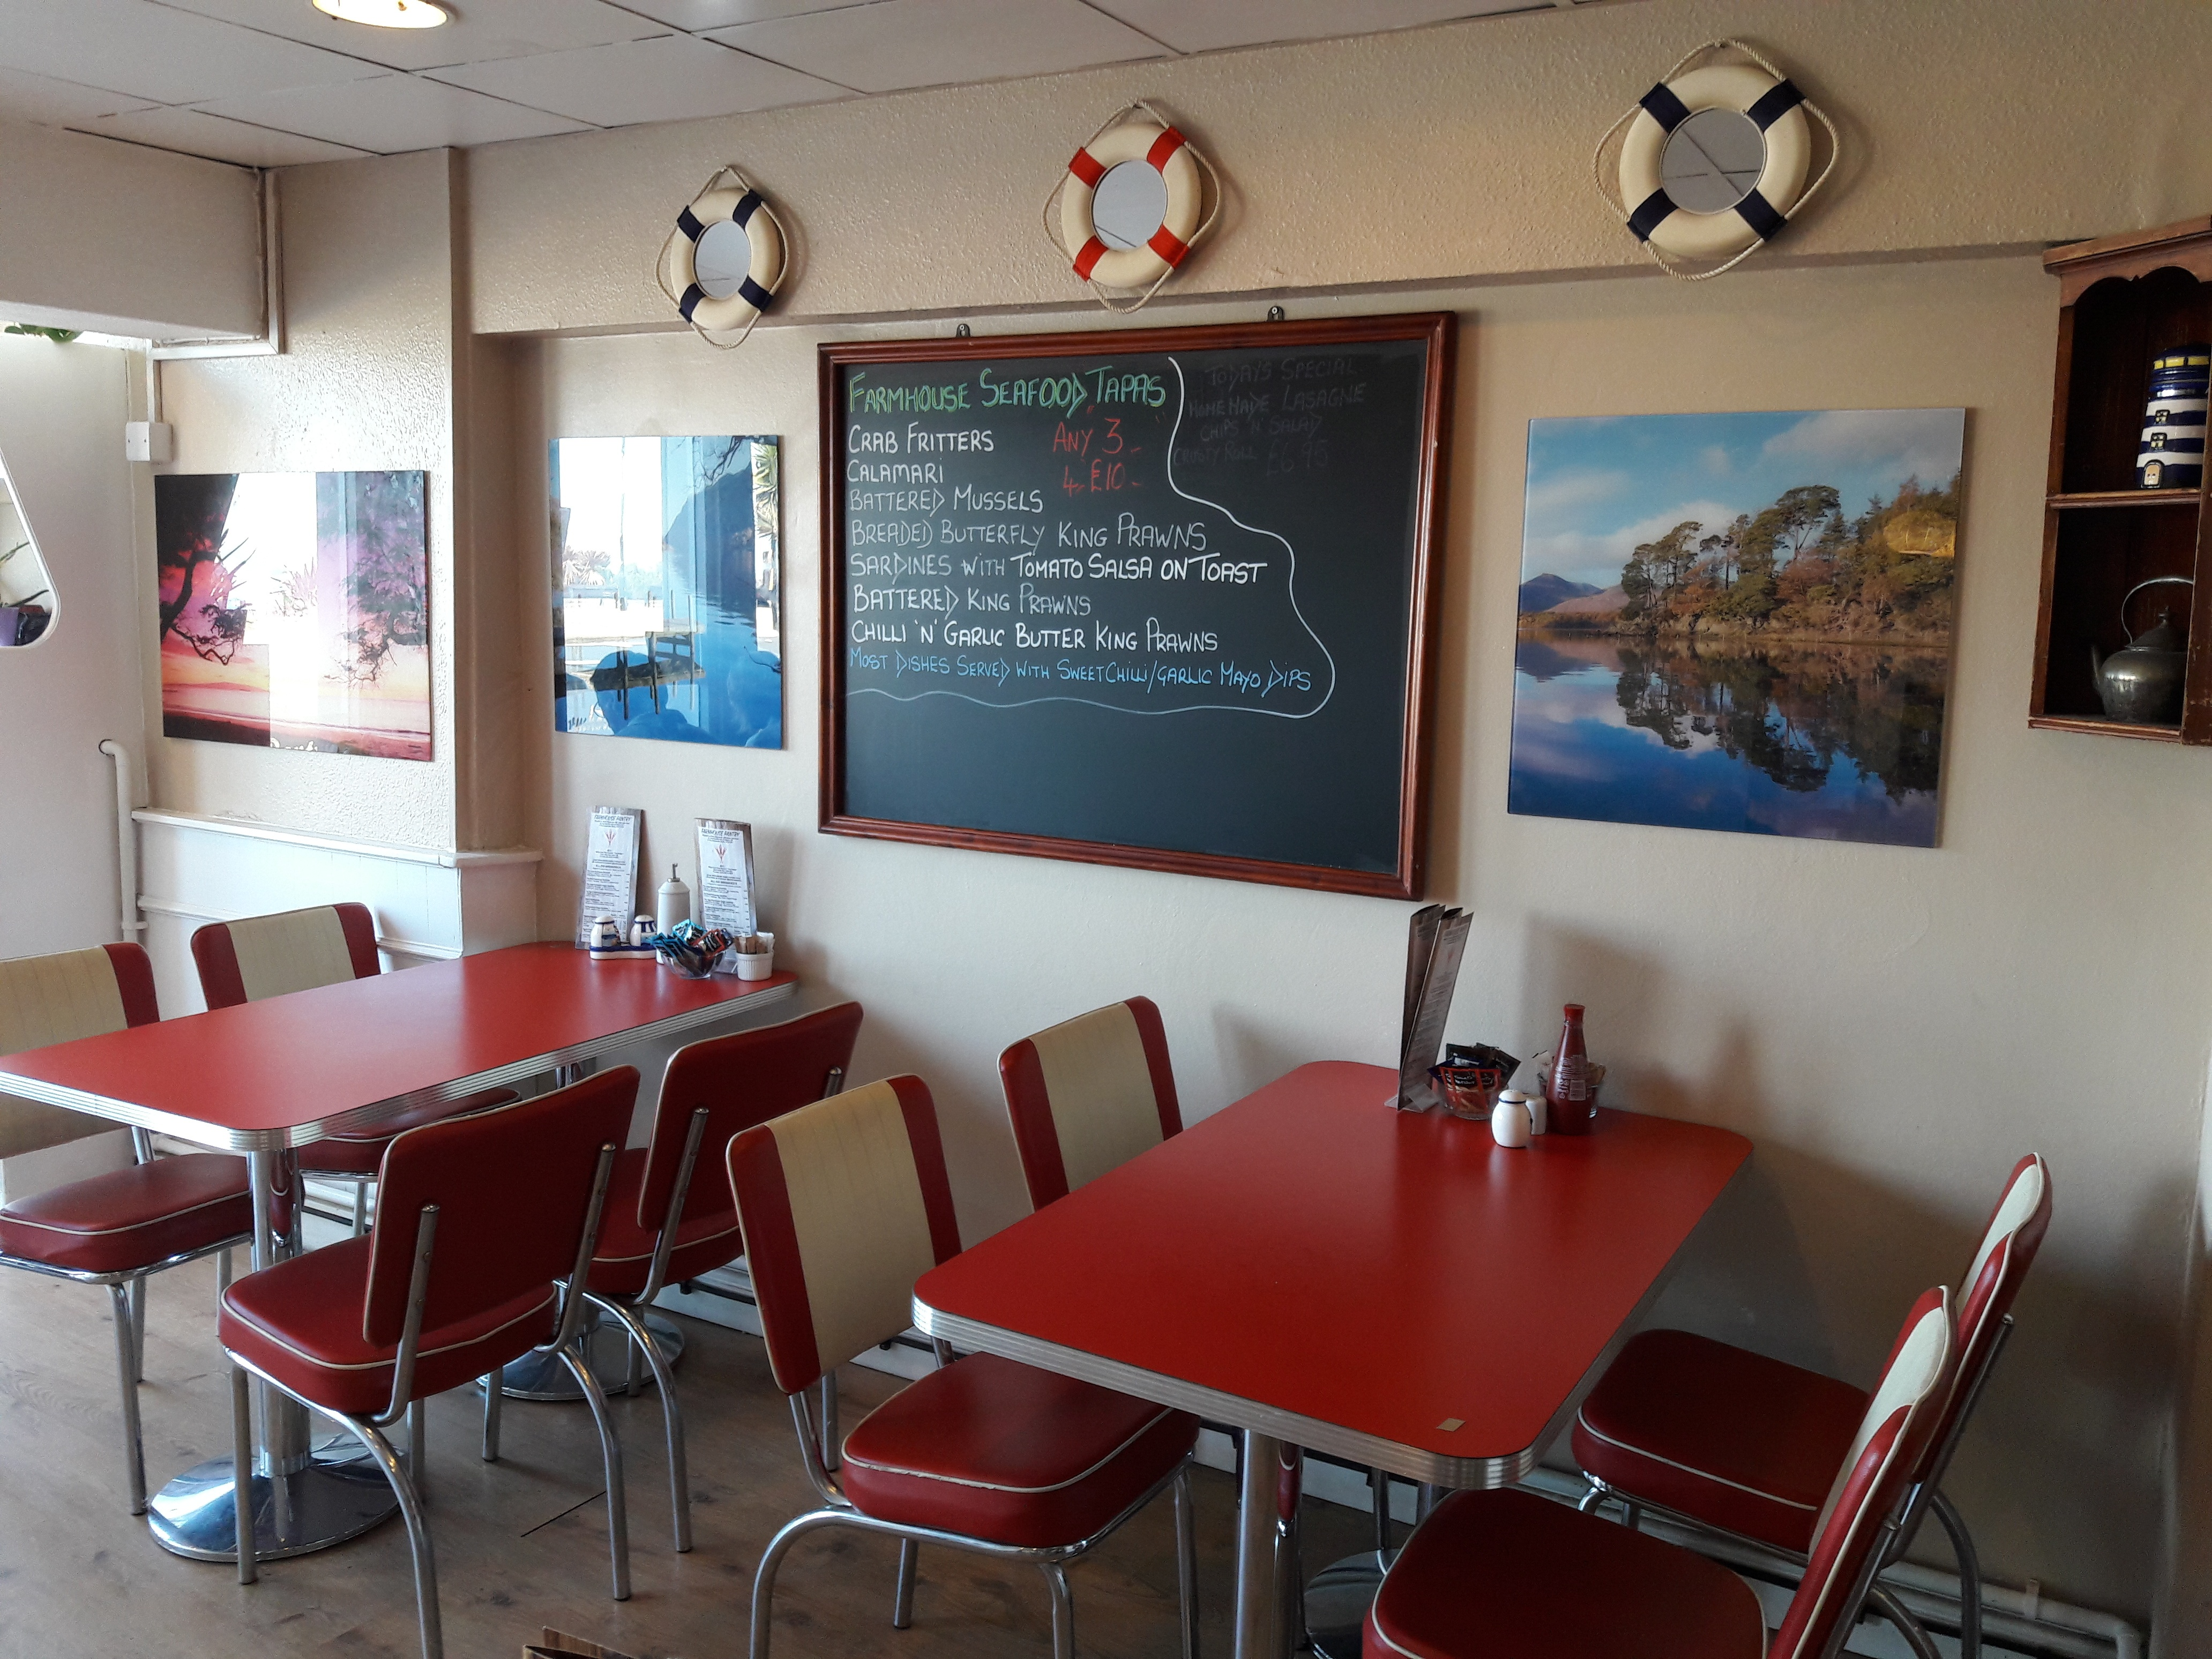 Lovely retro-style seafront cafe and restaurant